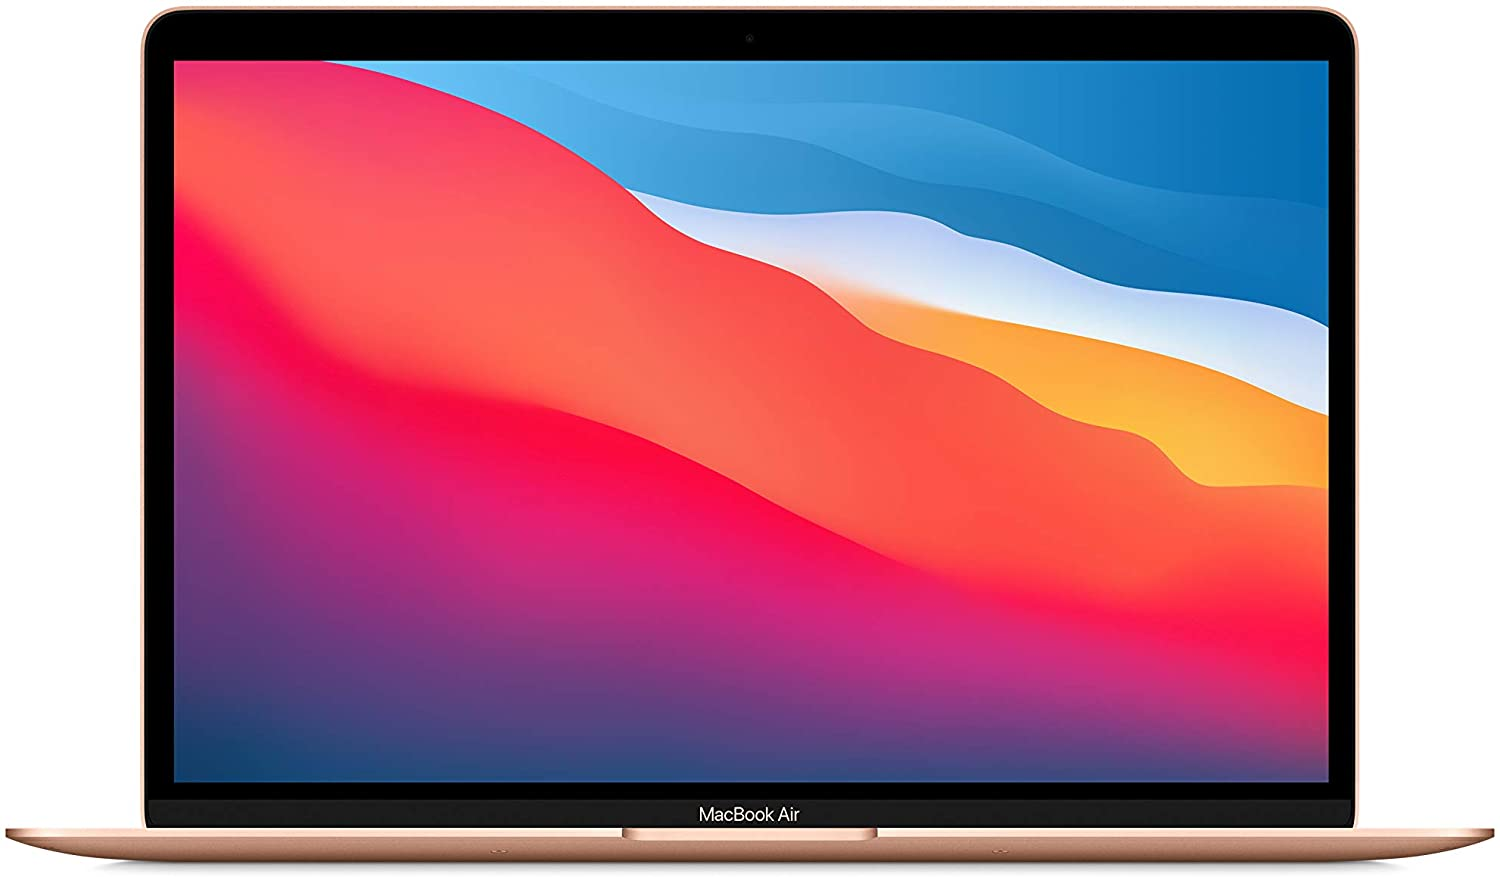 Apple products apart from their memory features are also noted for their battery life. While setting up Mac initially